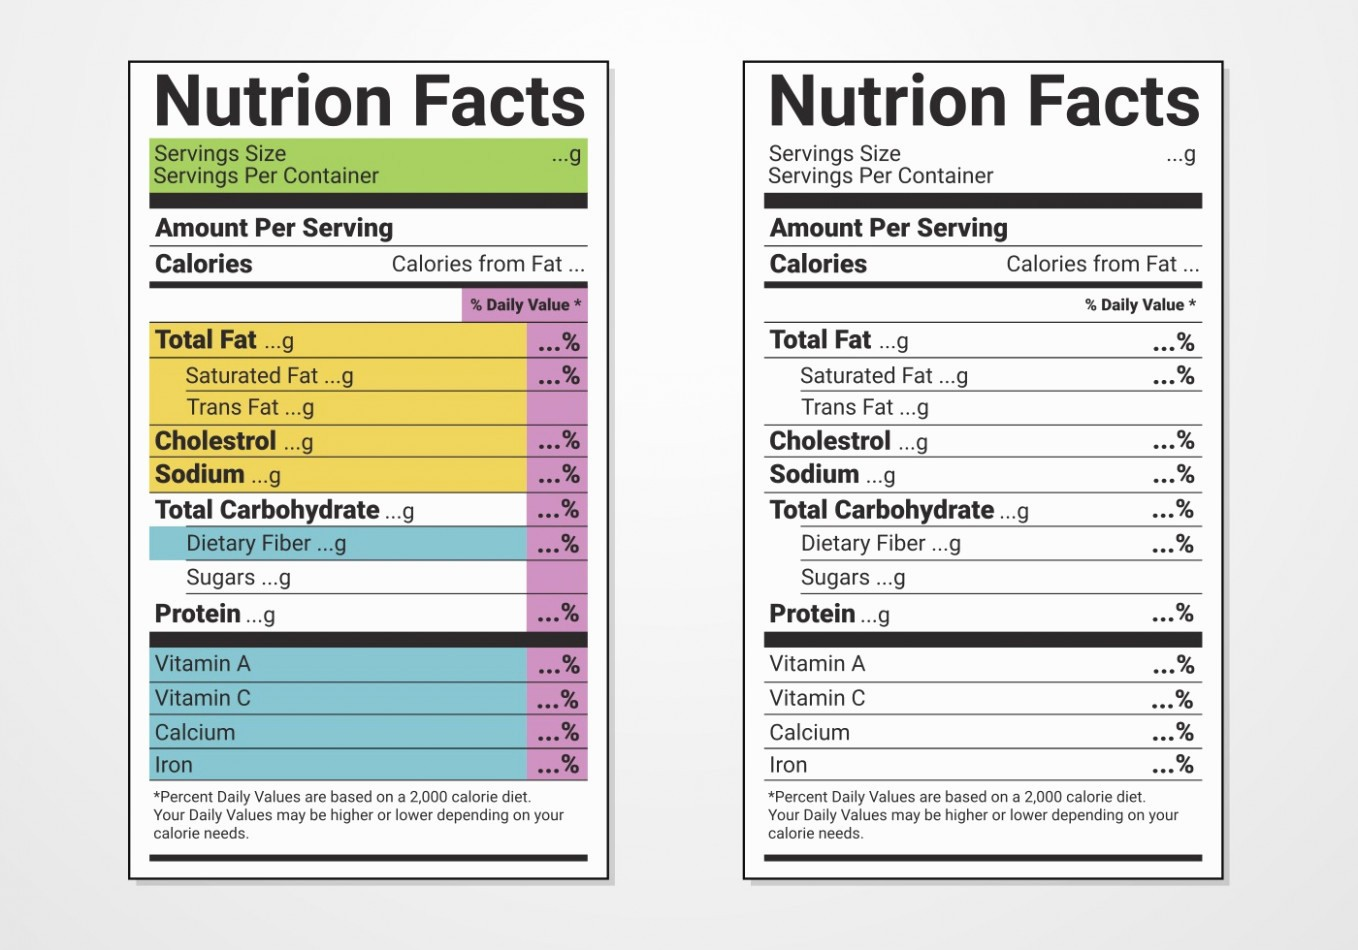 Personal Blank Nutrition Label Template Excel Inside Blank Nutrition Label Template Excel Samples